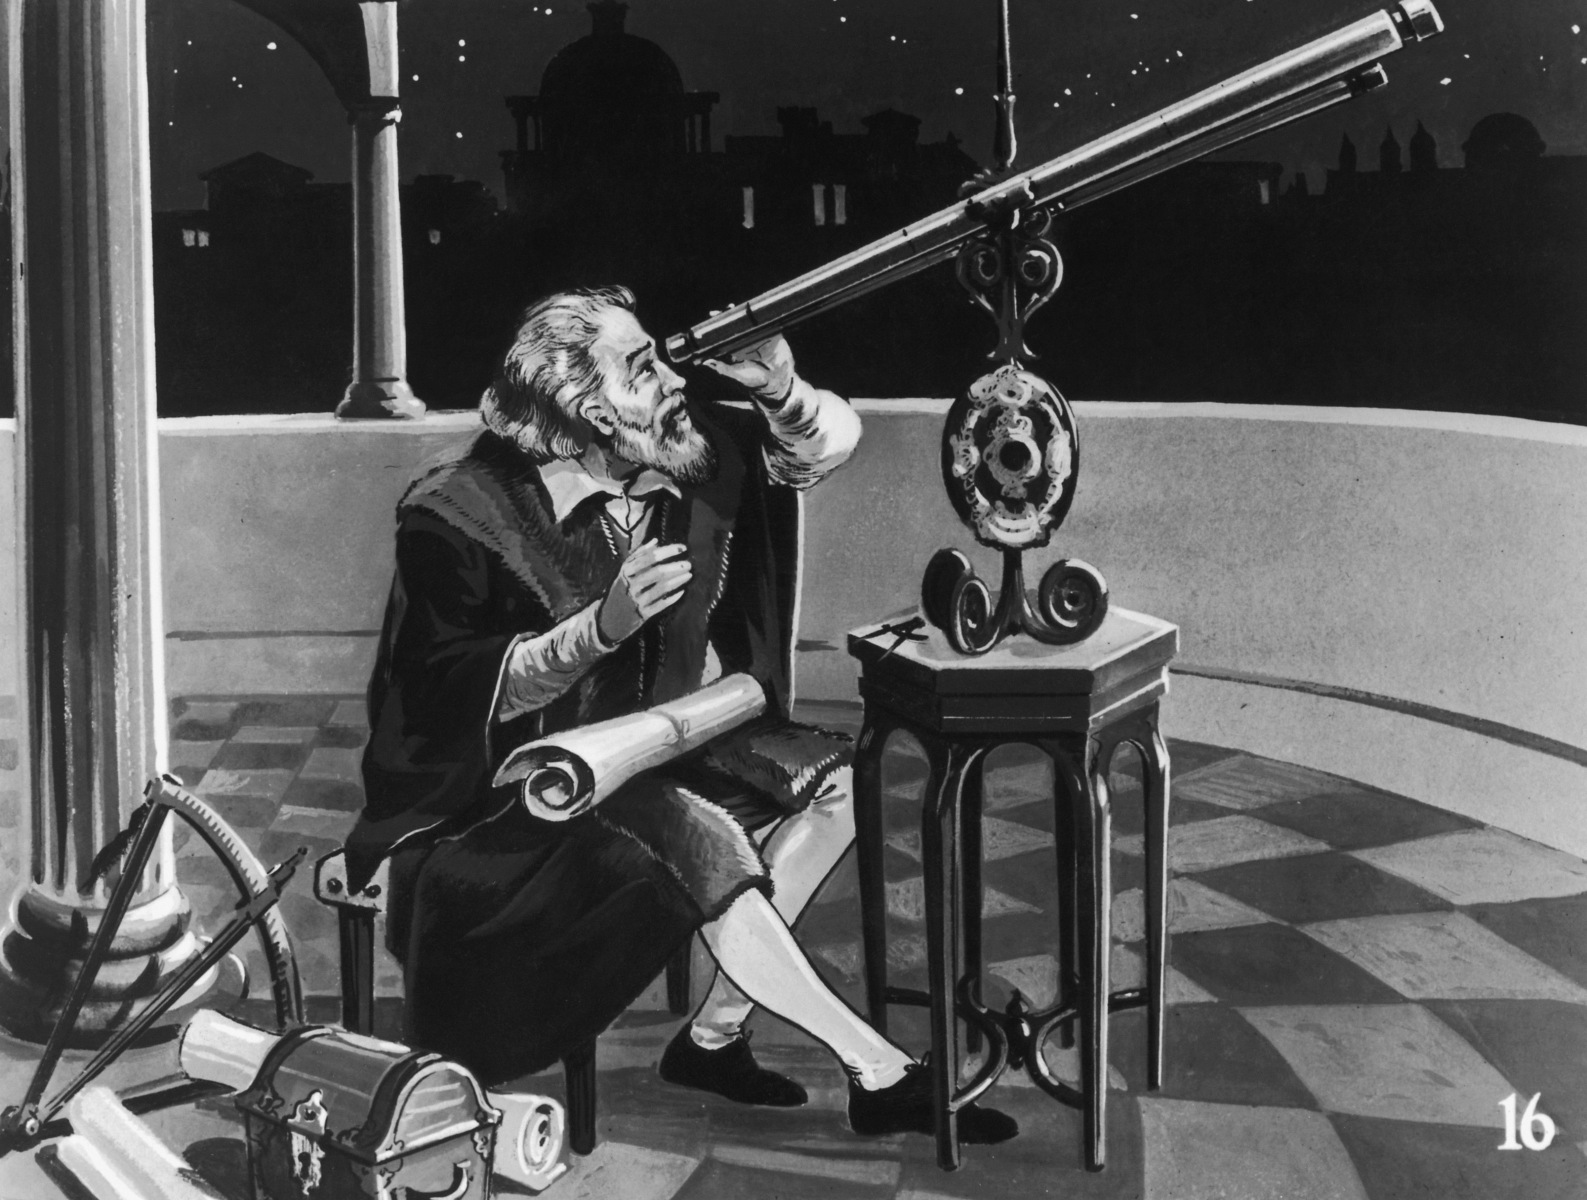 Italian astronomer and physicist, Galileo Galilei (1564 - 1642) using a telescope, circa 1620. A recently rediscovered letter sent by Galileo fills in an important part of the history of his greatest scientific revelation. (Photo by Hulton Archive/Getty Images)